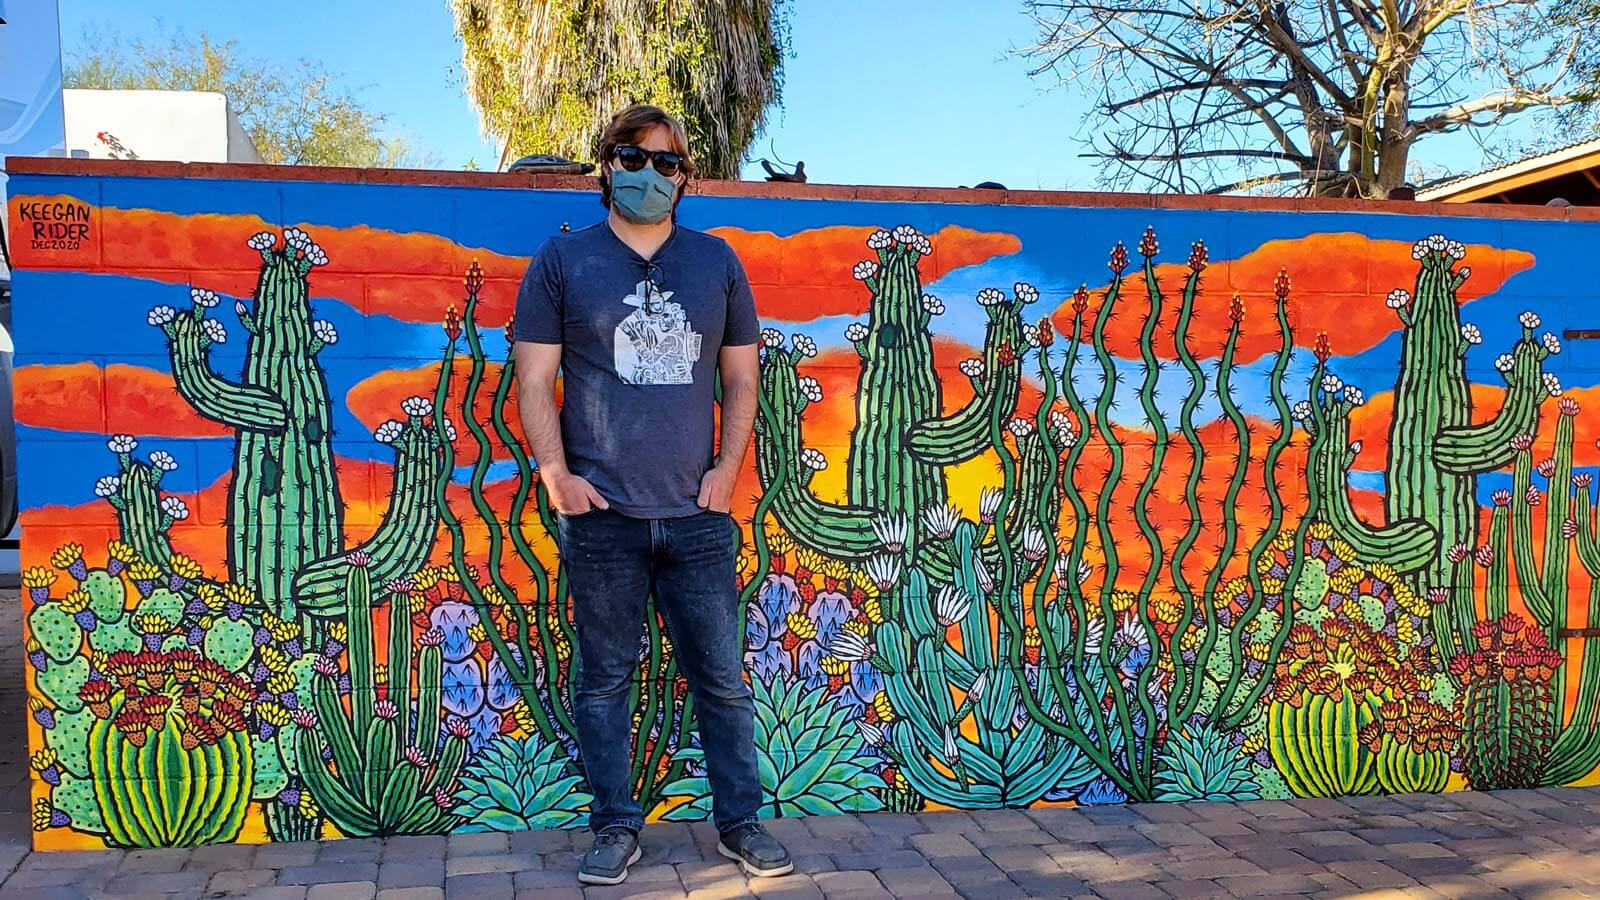 A man wearing a mask and sunglasses stands in front of a colorful mural of cactus plants in bloom.